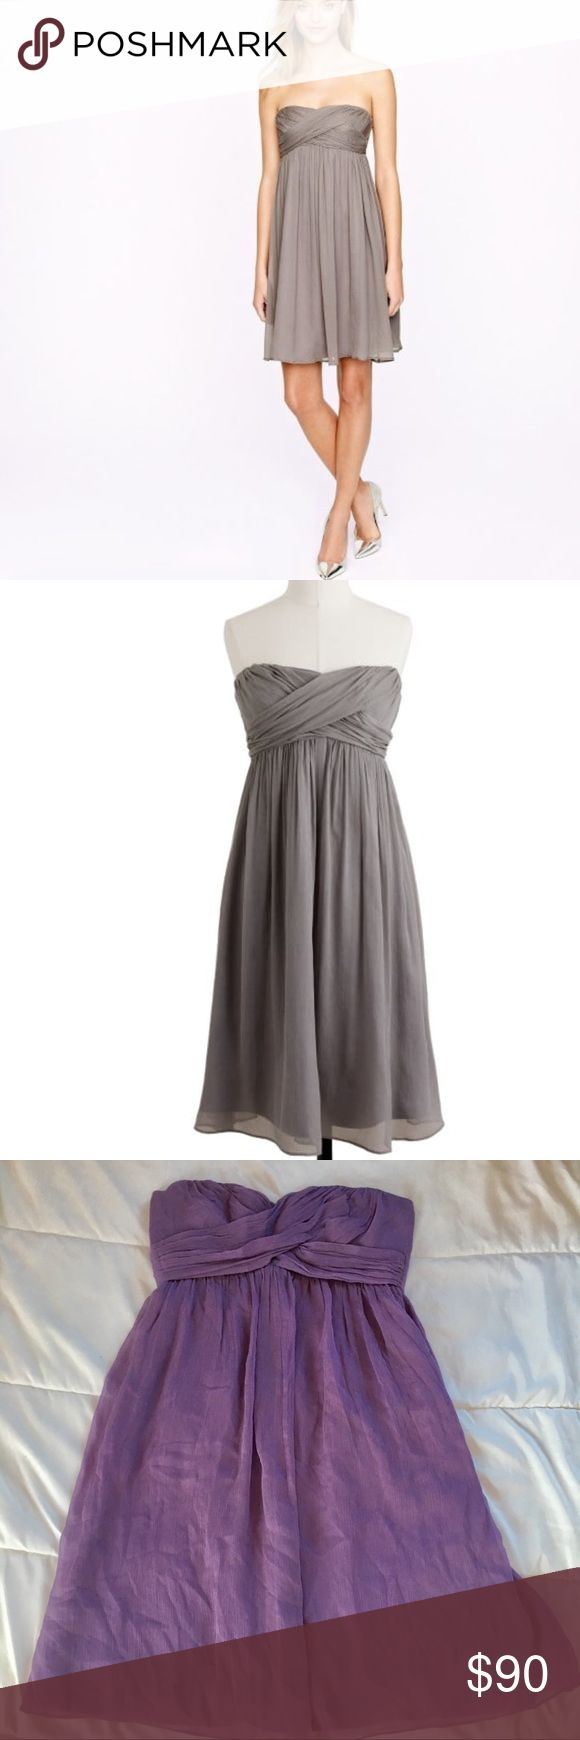 J. Crew Purple Taryn Silk Chiffon Strapless Dress J. Crew Purple Taryn Silk Chiffon Dress   Size 2 Worn once in good condition Strapless Dress Wedding dress Mini above the knee Dress  A great new strapless silhouette that's soft and romantic in floaty silk chiffon with a delicate crinkled texture (it drapes beautifully on the body, so it's incredibly flattering too).   A-line silhouette. Fitted bodice. Silk chiffon. Falls above knee Back zip. Lined. Dry clean. J. Crew Dresses Mini